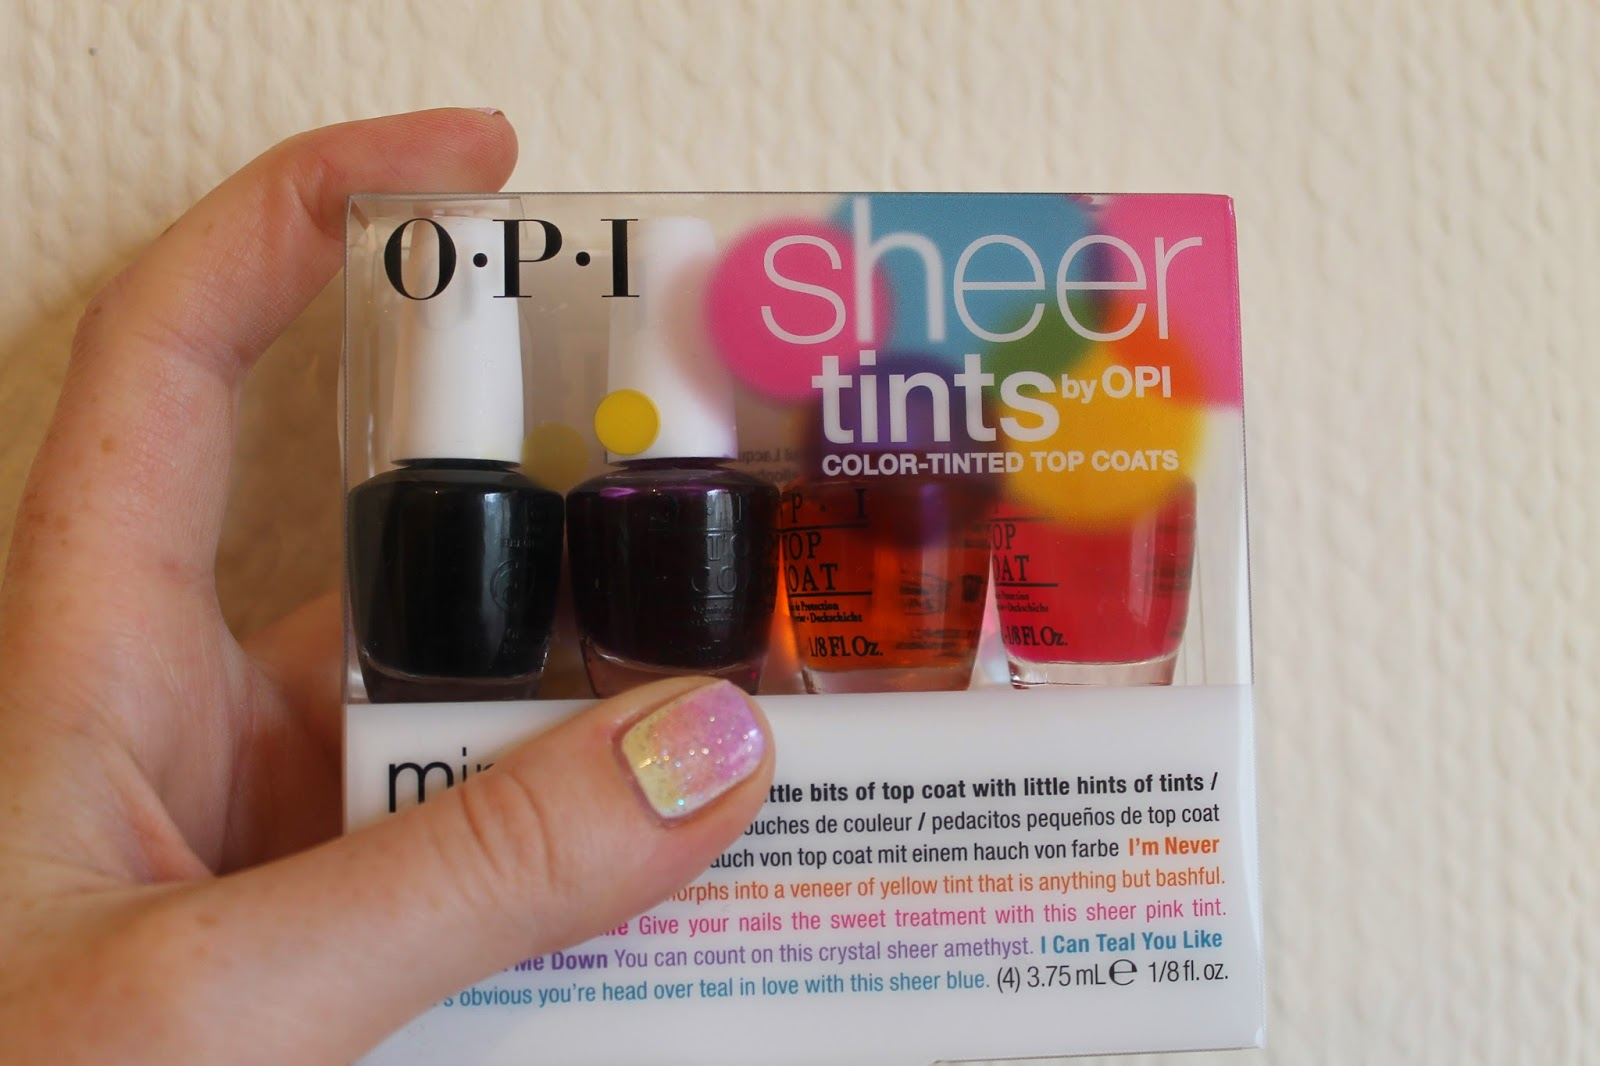 NailsByNumbers: NOTD! OPI Sheer Tints Gradient